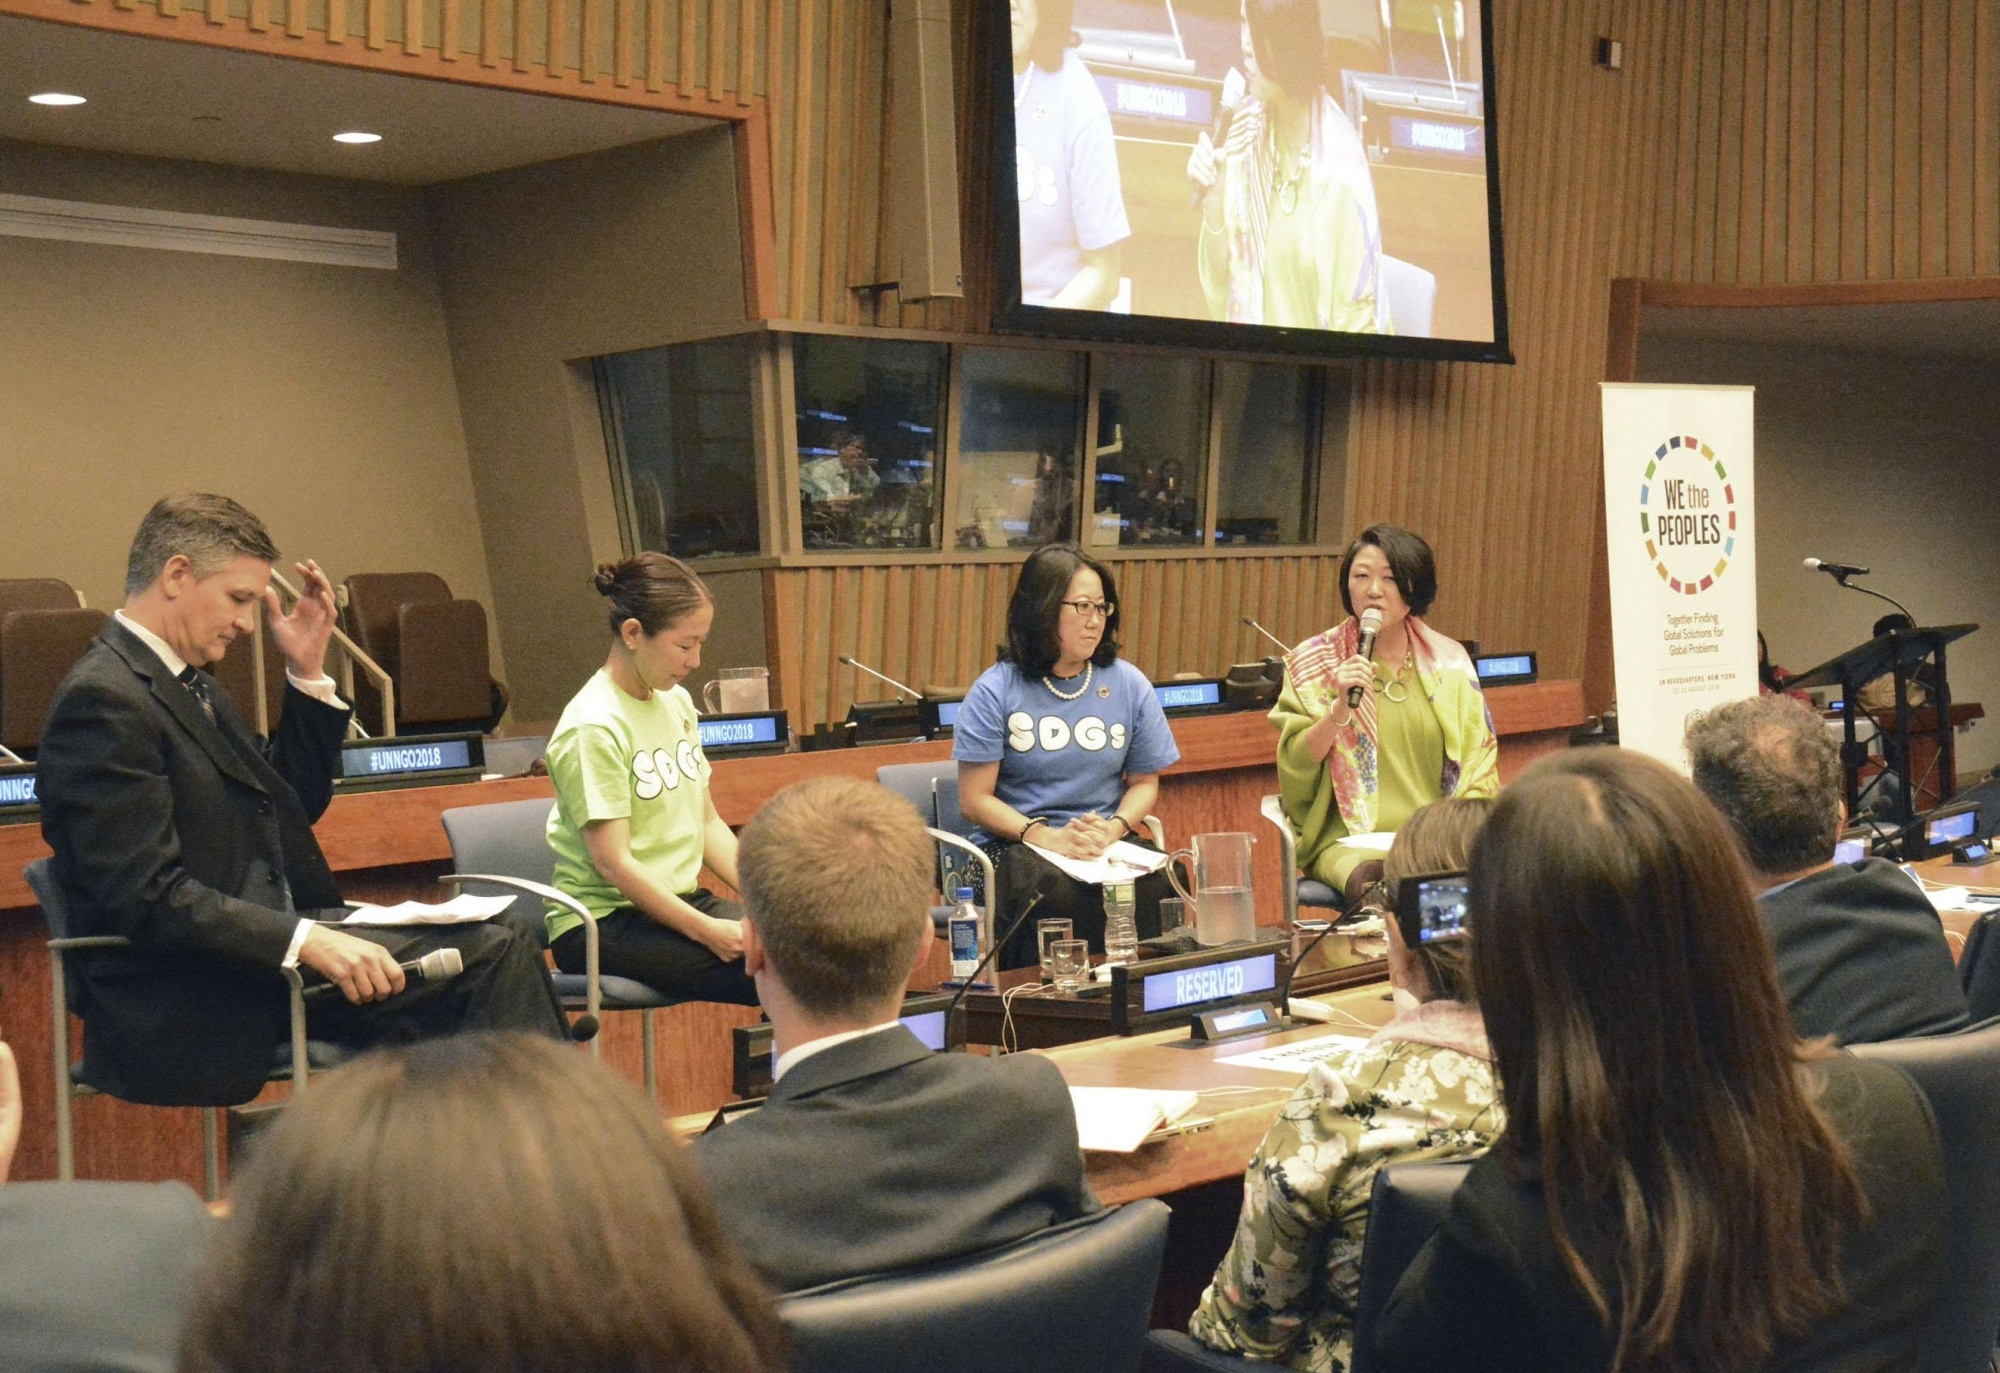 Kaoru Nemoto (back right), the Tokyo director of the U.N. Information Center, speaks at a U.N. civil society conference on Sustainable Development Goals along with Miyabi Haneda (back, second from left) of Yoshimoto Kogyo Co. on Thursday in New York. | KYODO